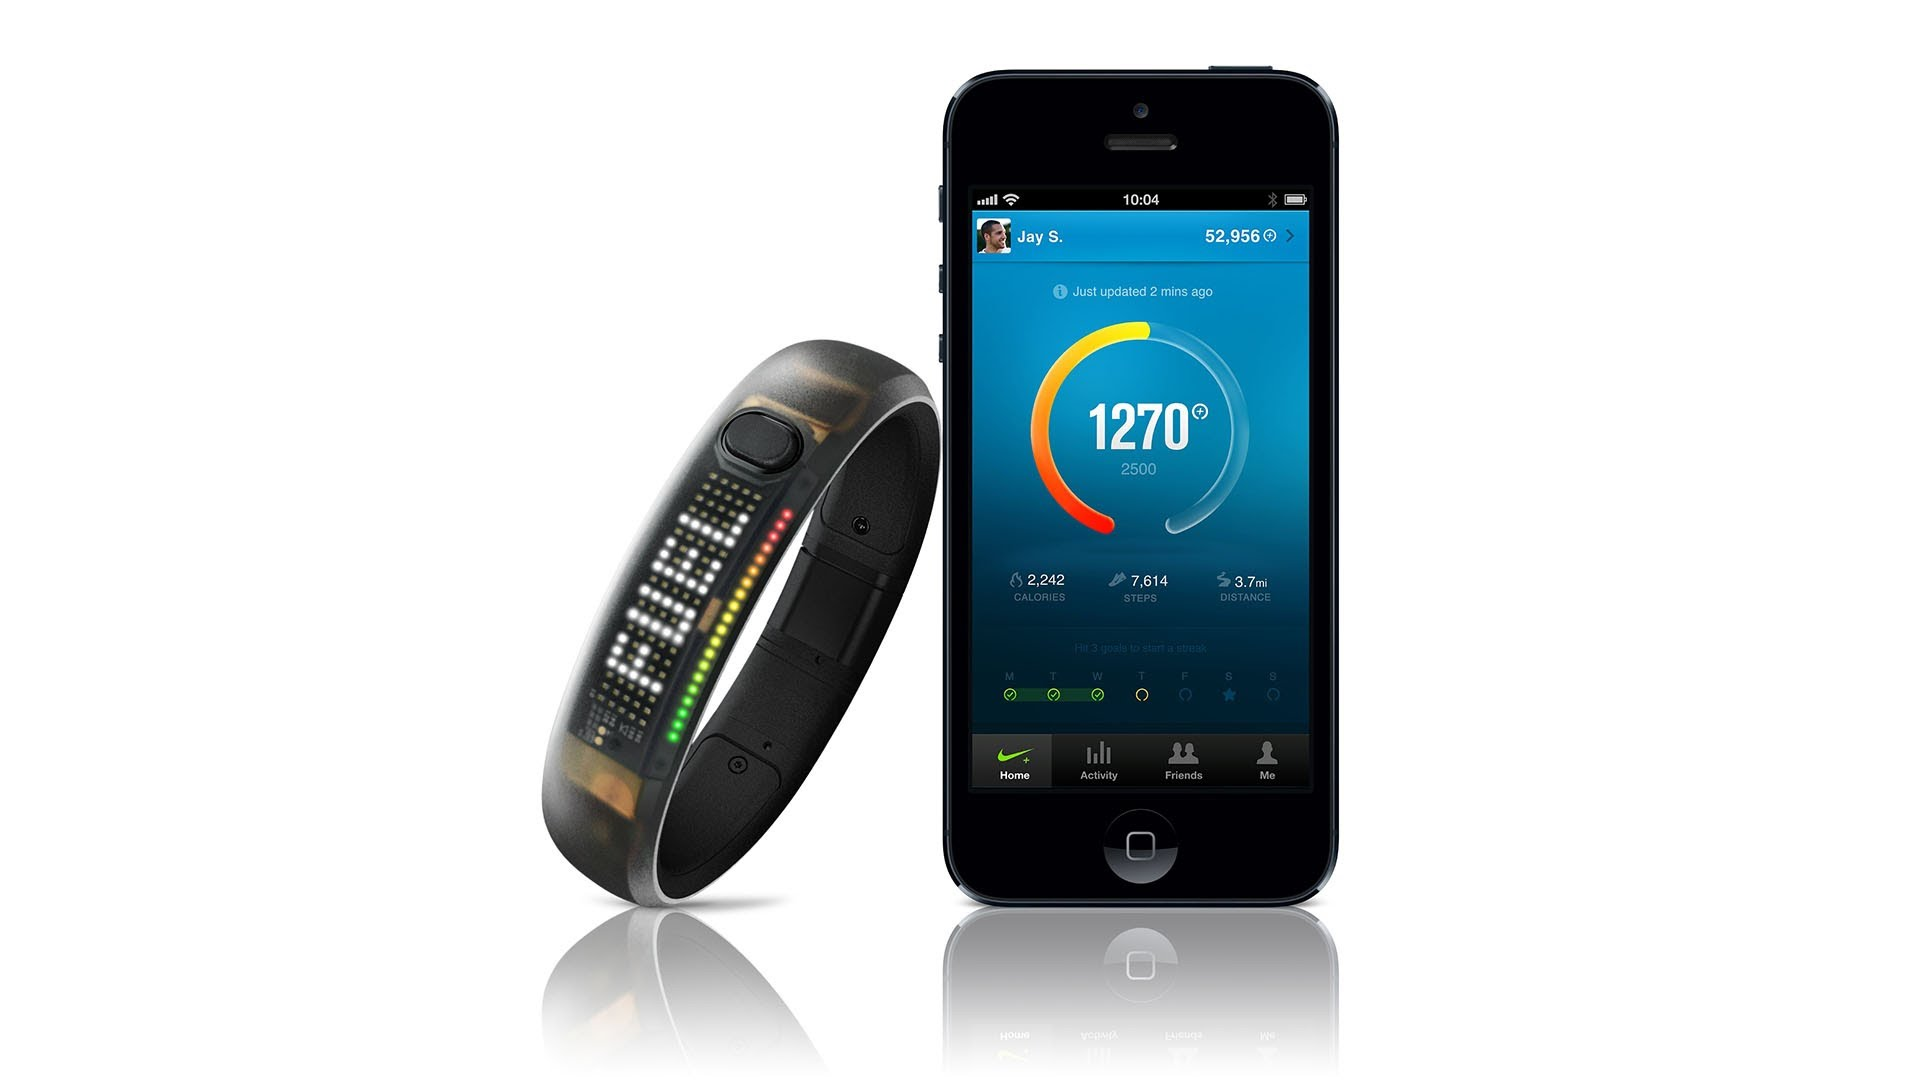 Nike is giving FuelBand owners $25 after settling class action suit